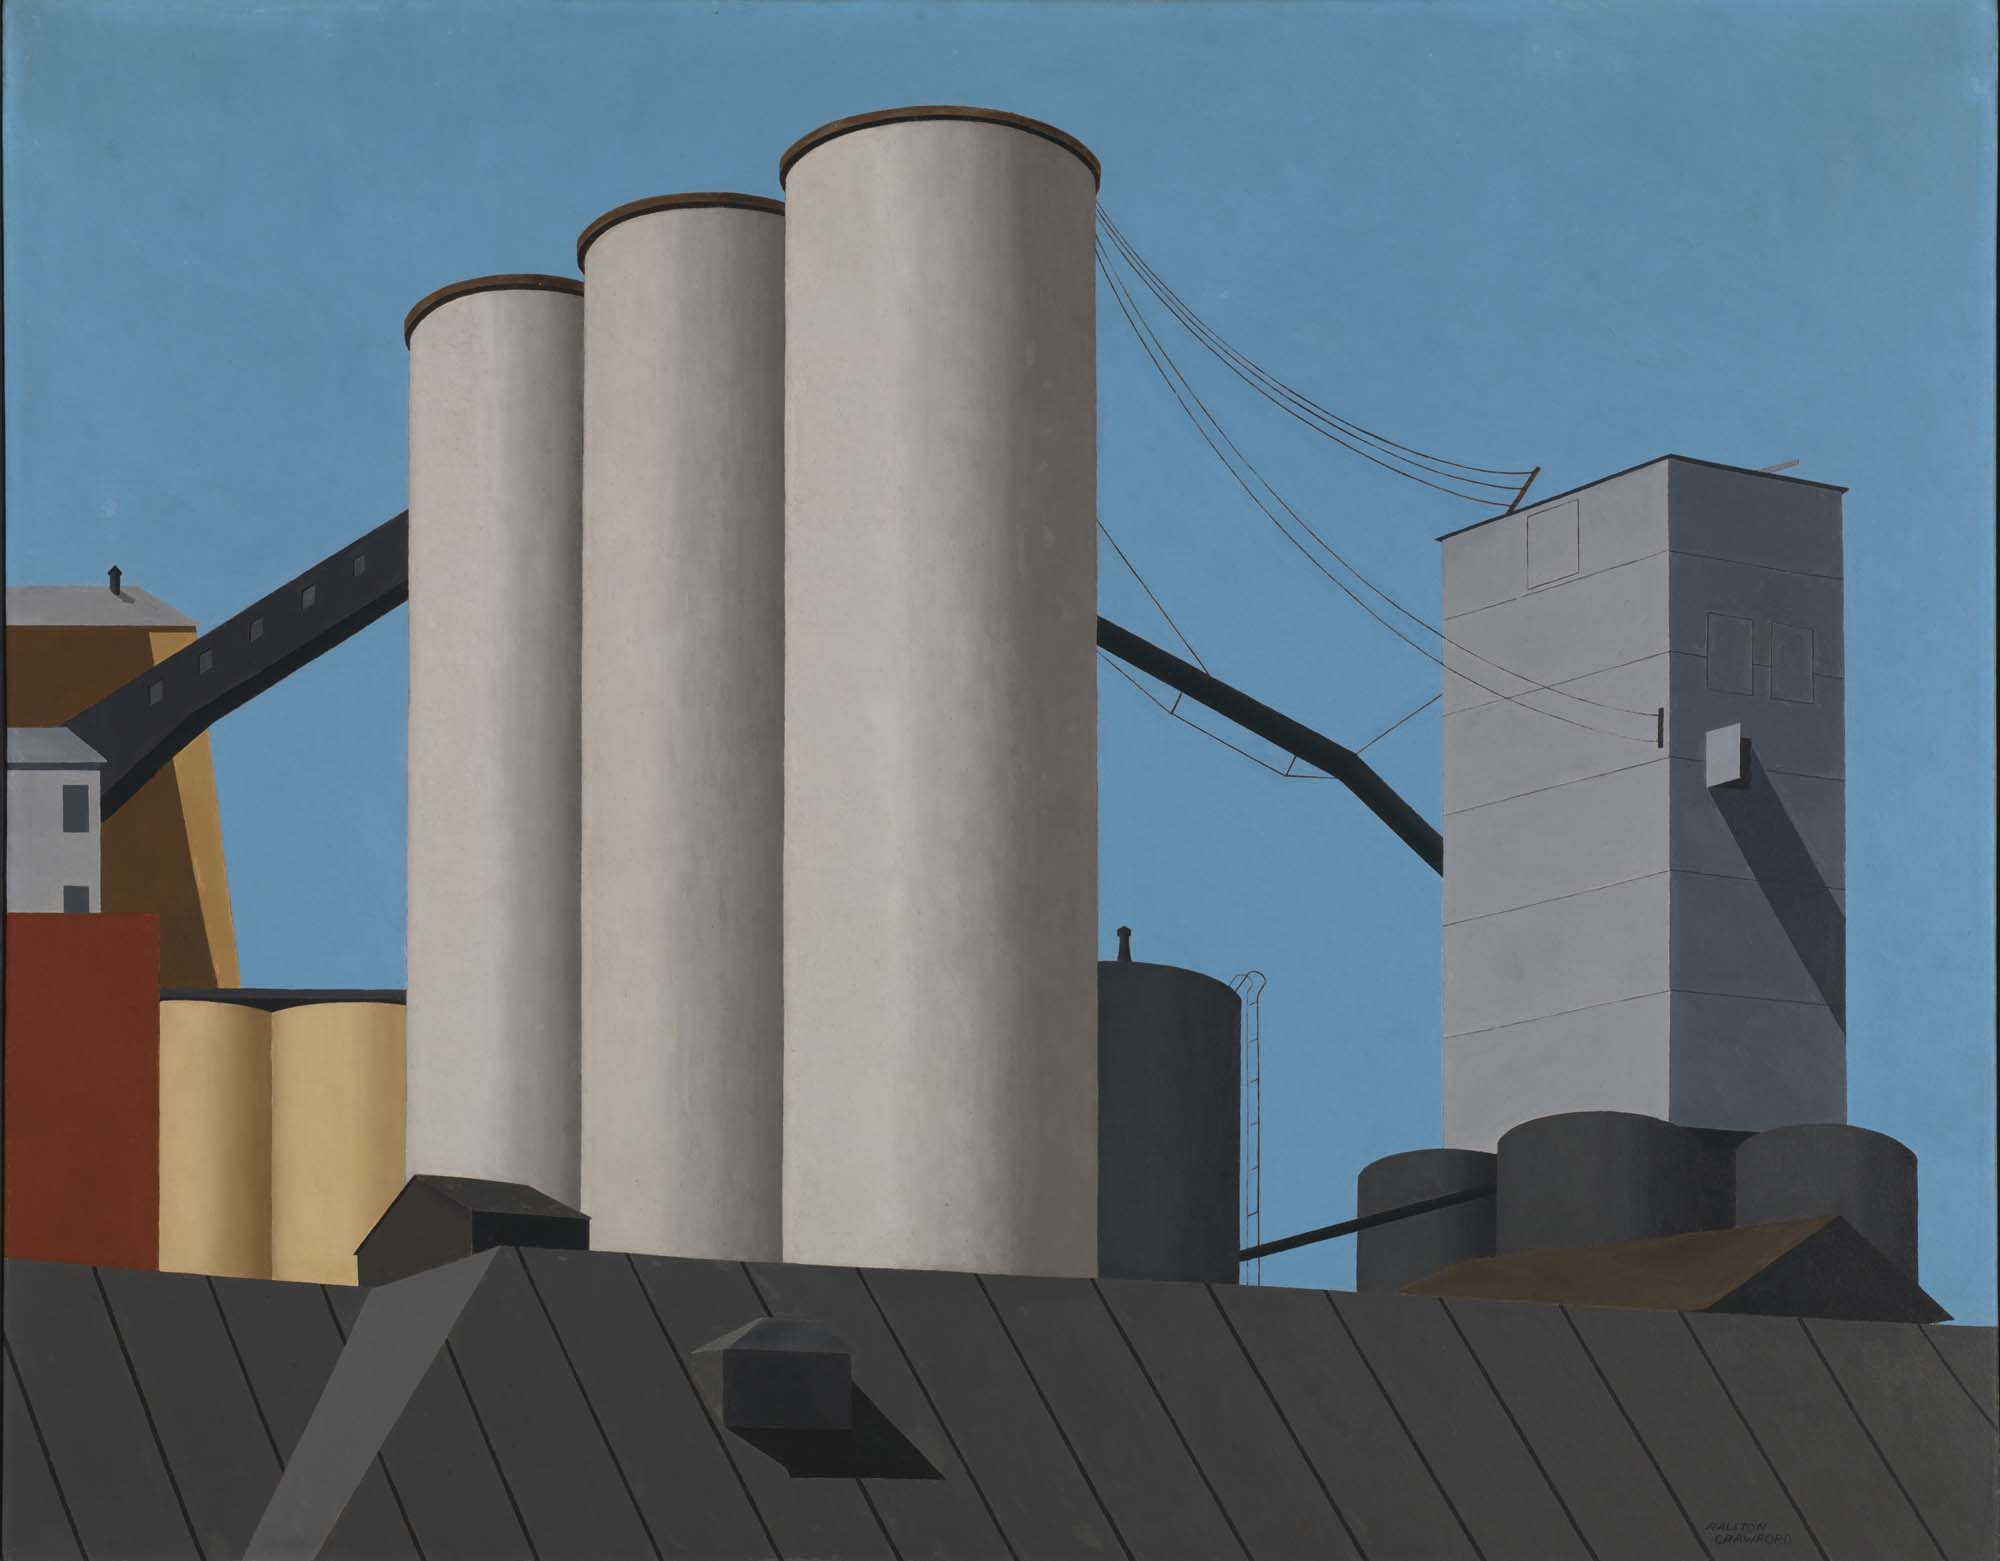 a painting of a trio of towers and a grain store against a blue sky